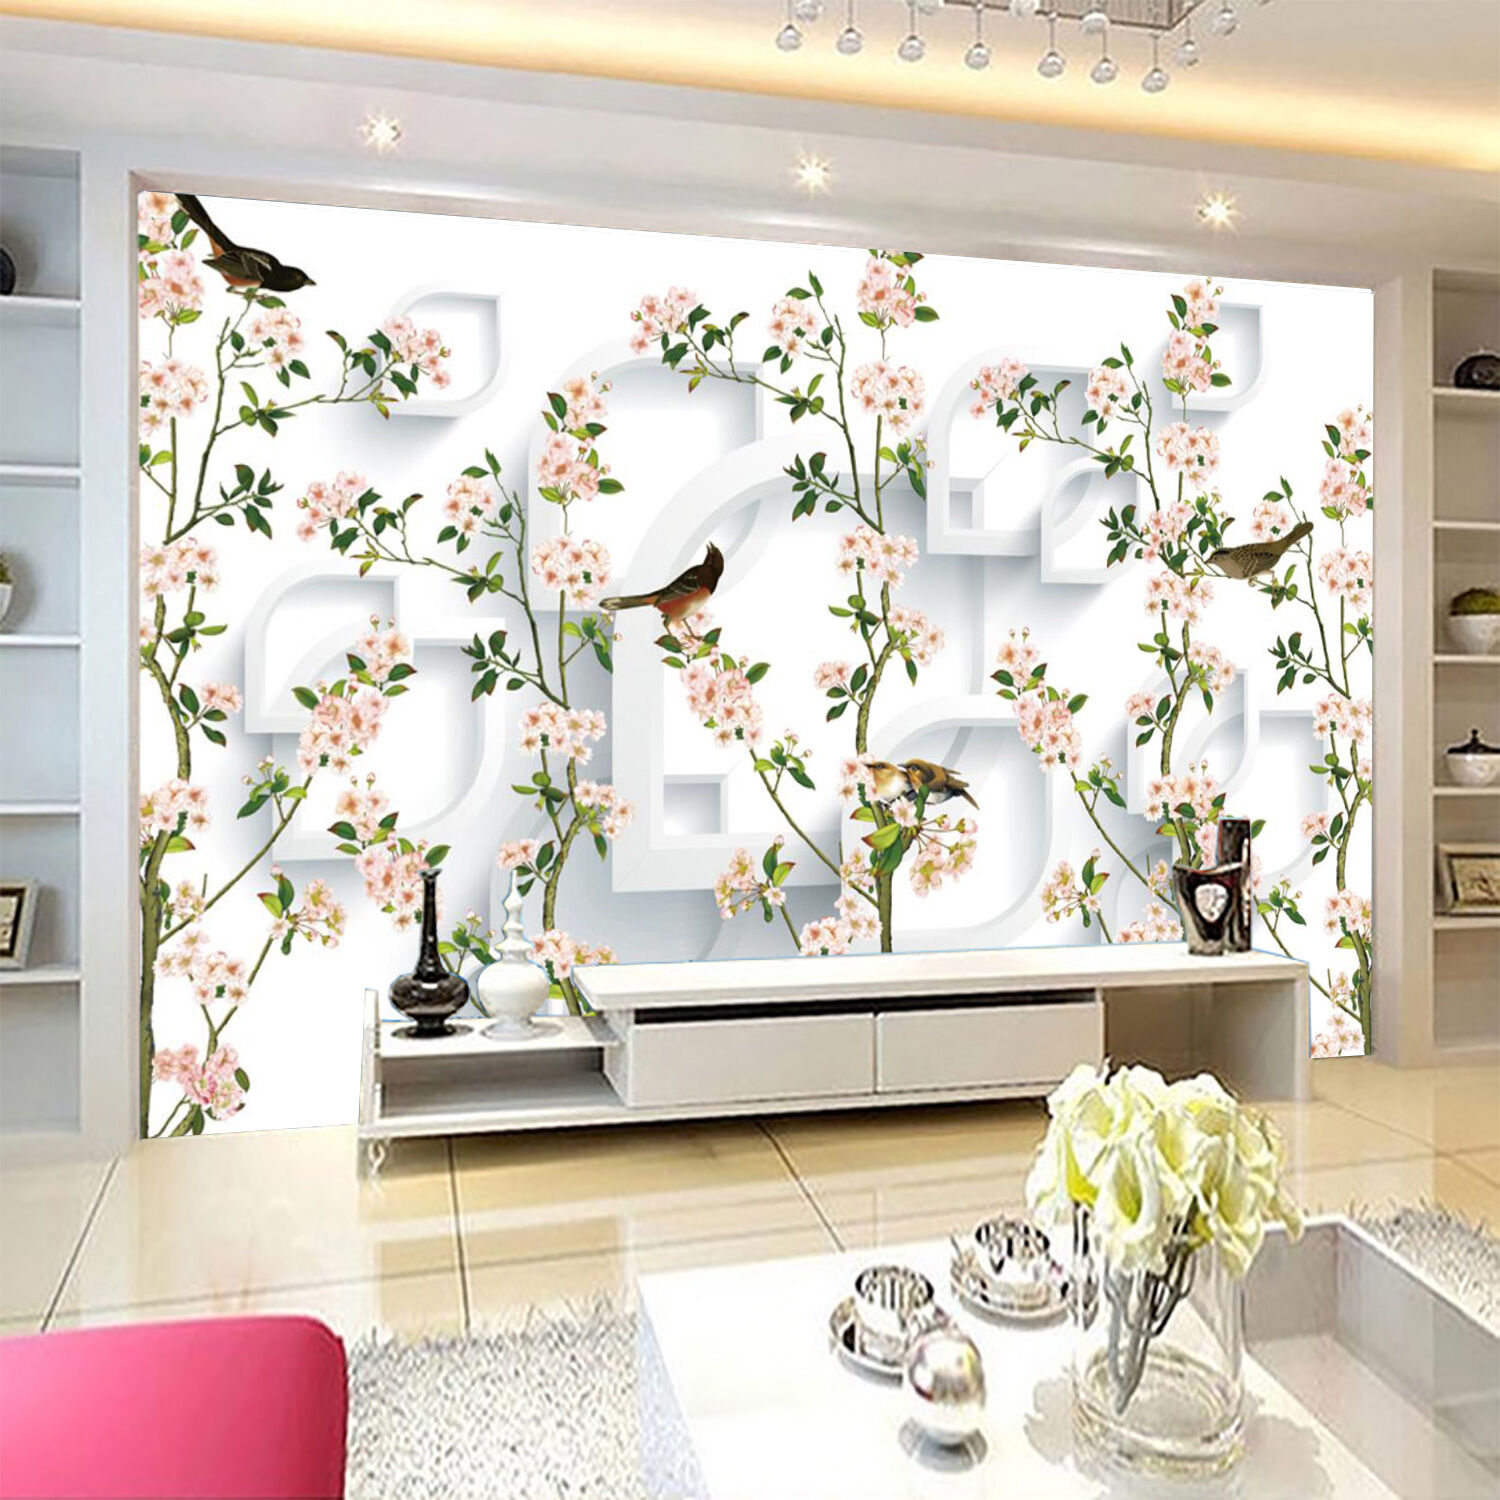 3D Flowering Trees 365 Wall Paper Wall Print Decal Wall Deco Indoor AJ Wall Pape